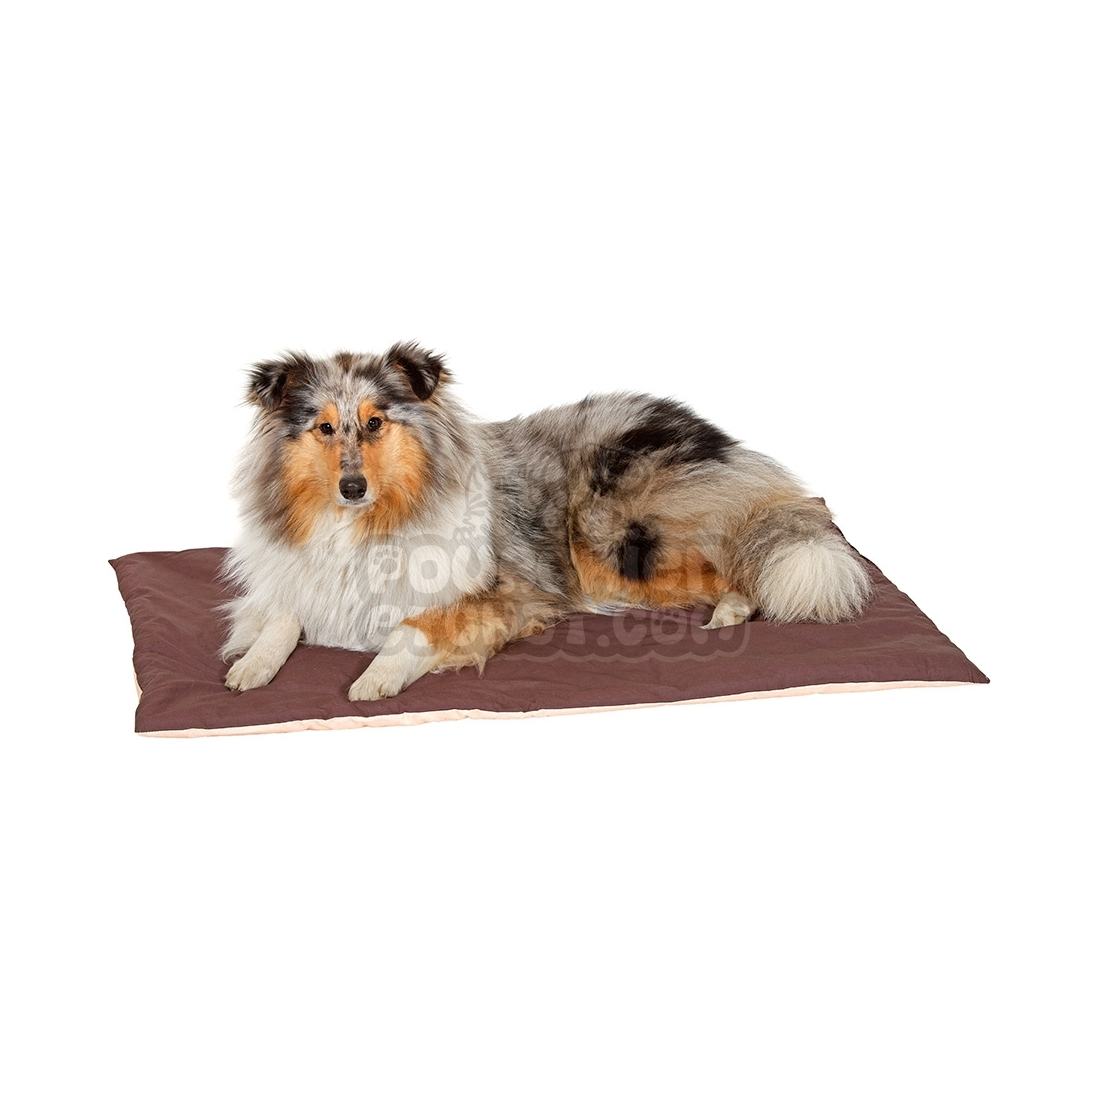 tapis pour chien doc bed marron et beige. Black Bedroom Furniture Sets. Home Design Ideas